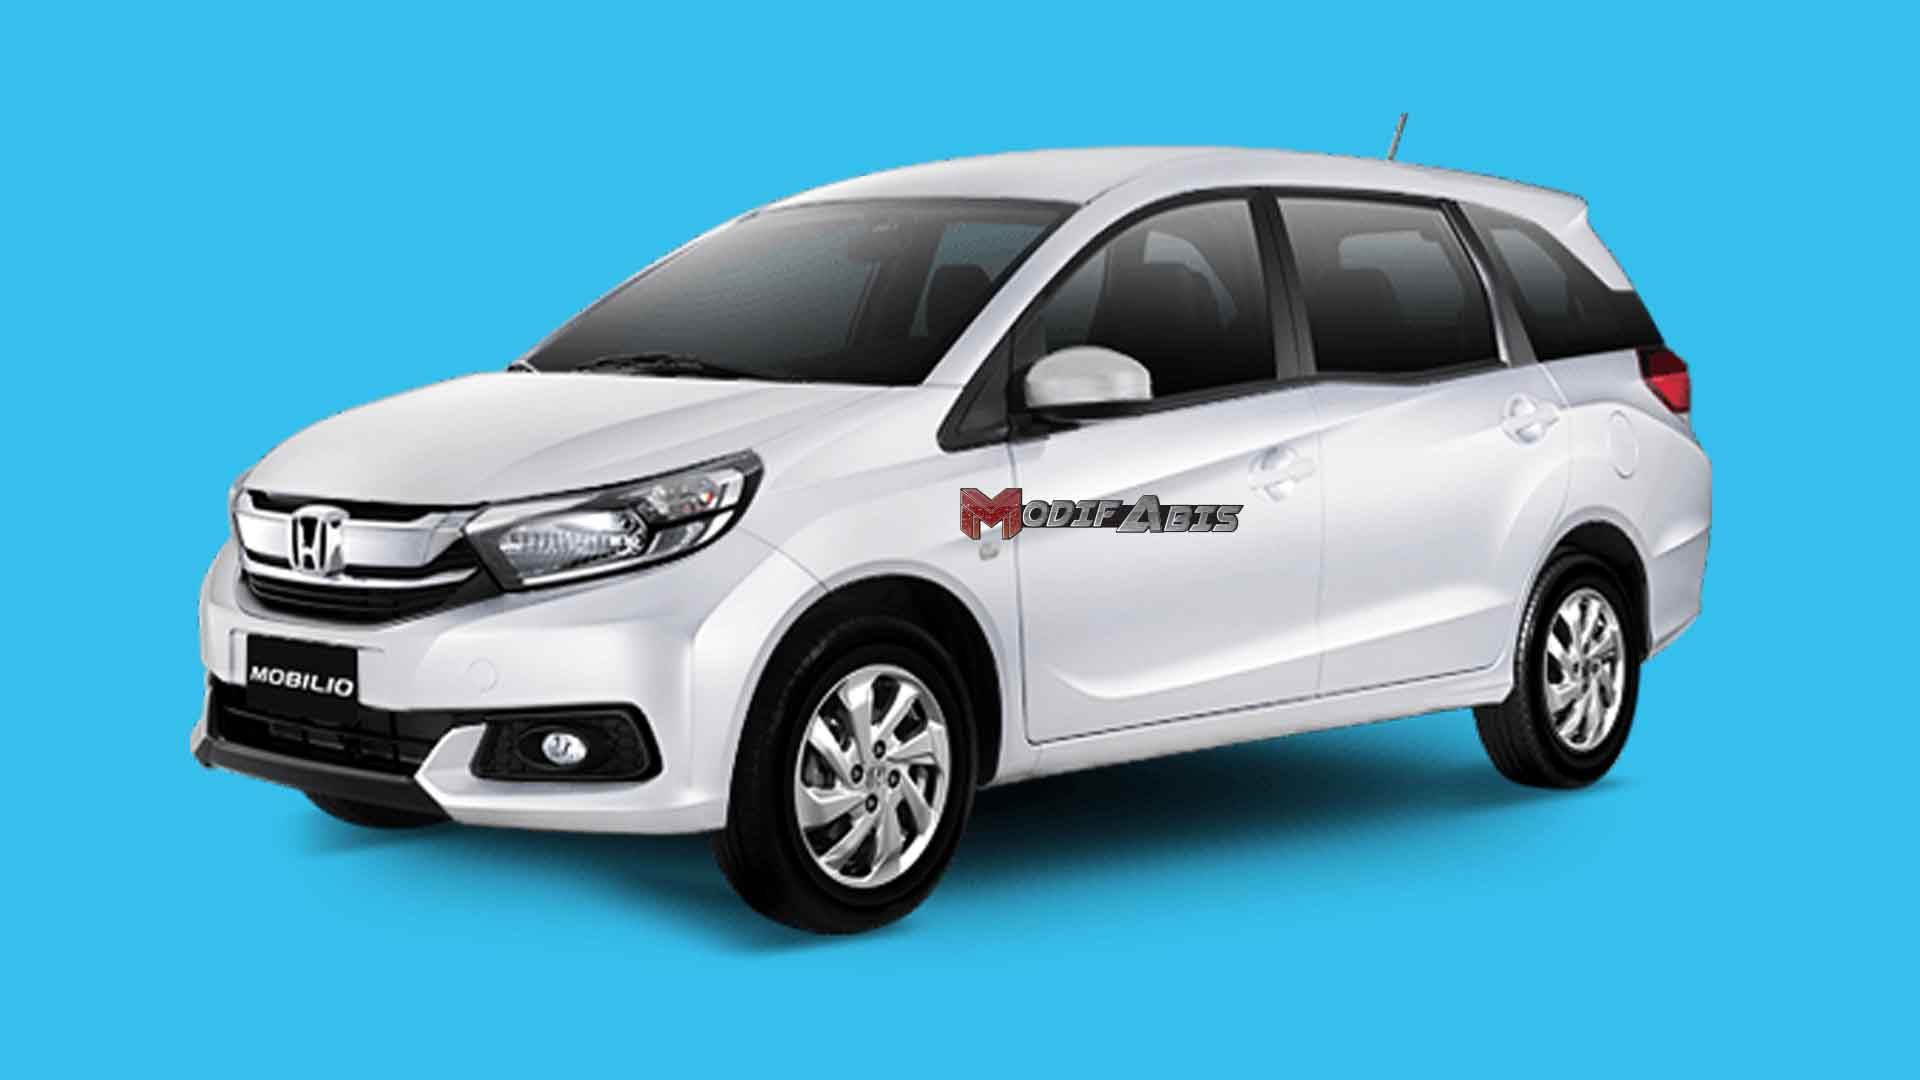 Honda Mobilio MPV Car Specifications